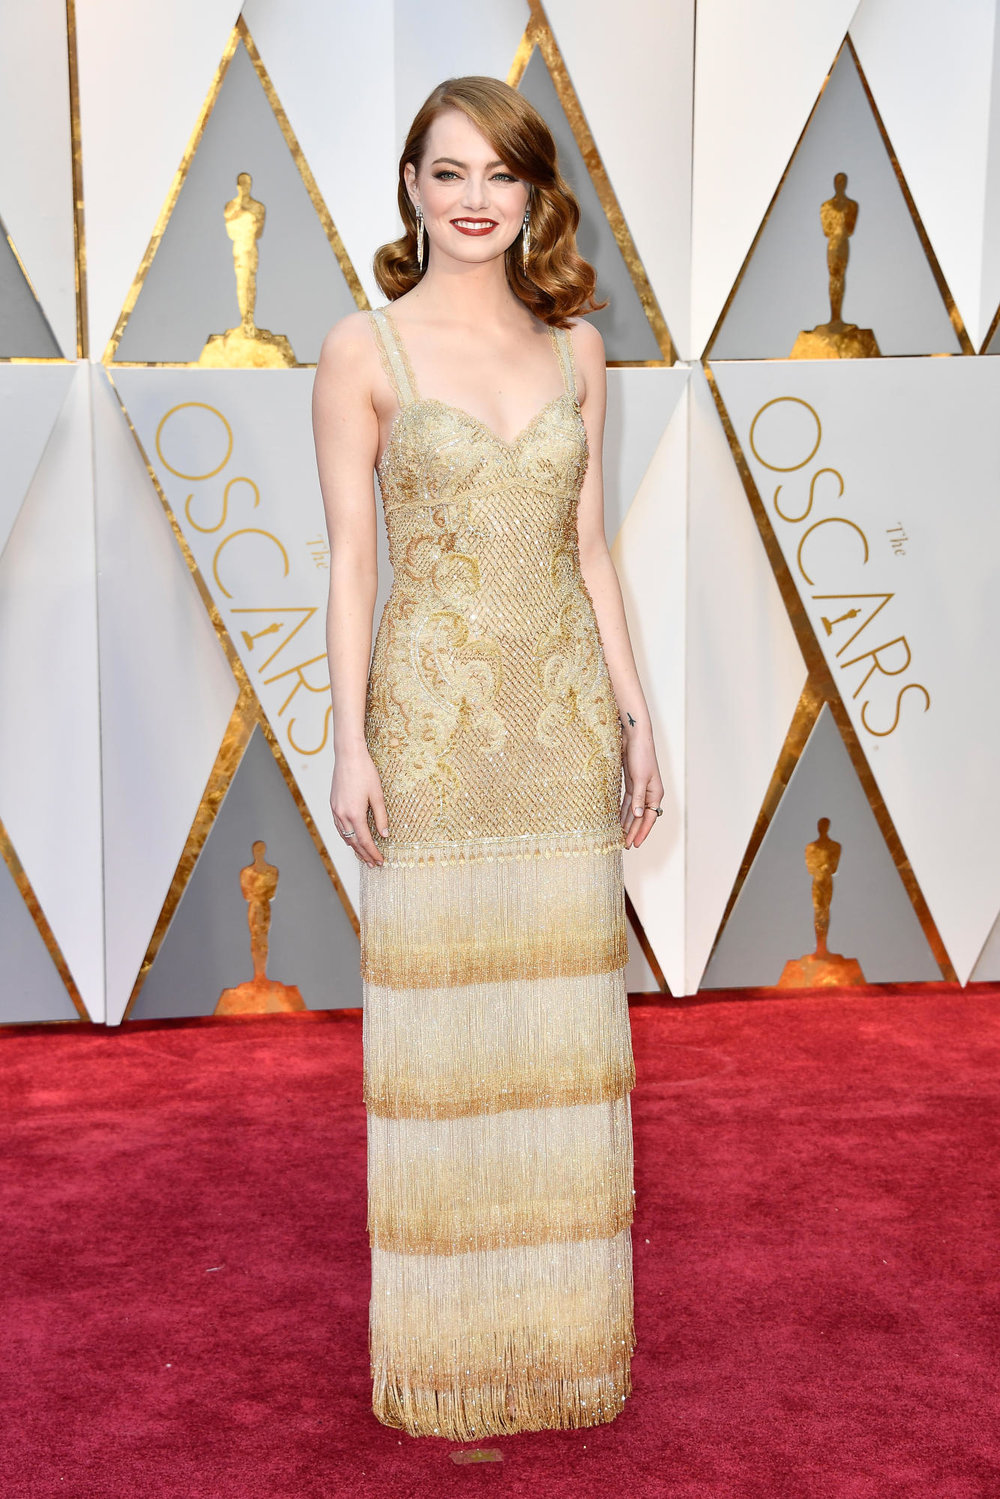 Emma Stone in Givenchy gown (Getty images)